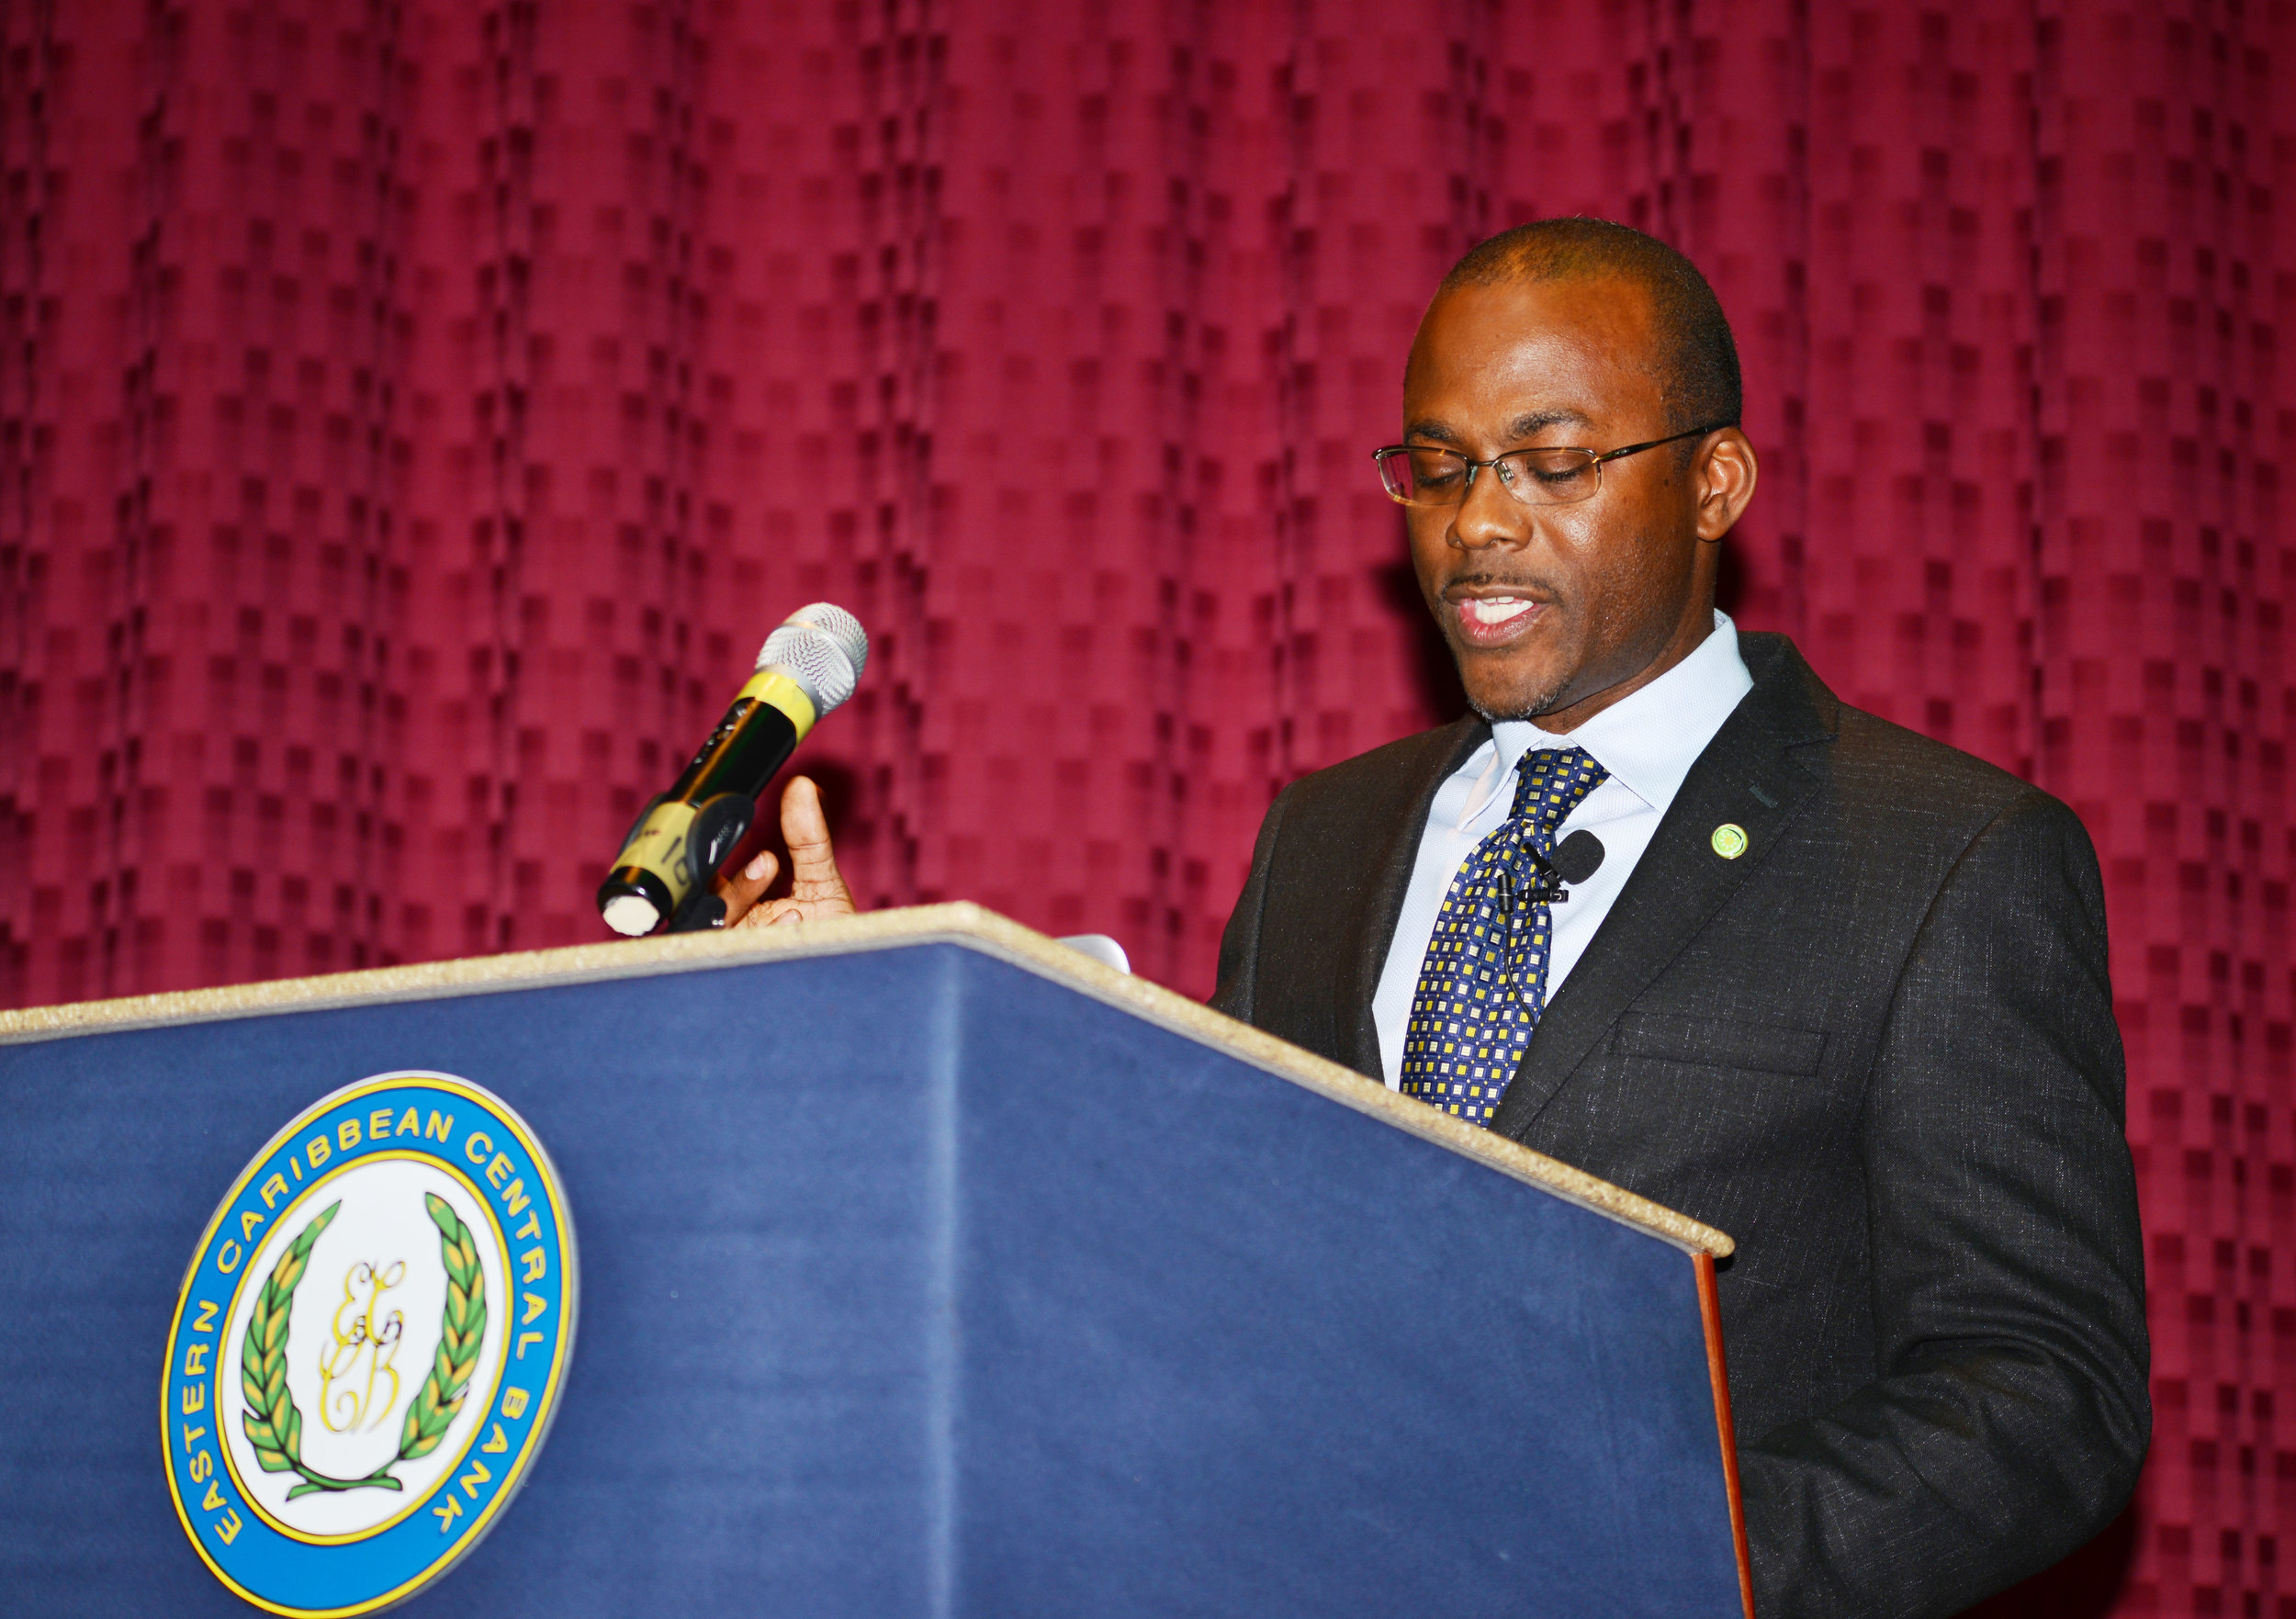 Bevil Wooding presents at the 23rd Sir Arthur Lewis Memorial Lecture, Sir Cecil Jacobs Auditorium, Eastern Caribbean Central Bank Headquarters, Basseterre, St Kitts, on November 7, 2018.